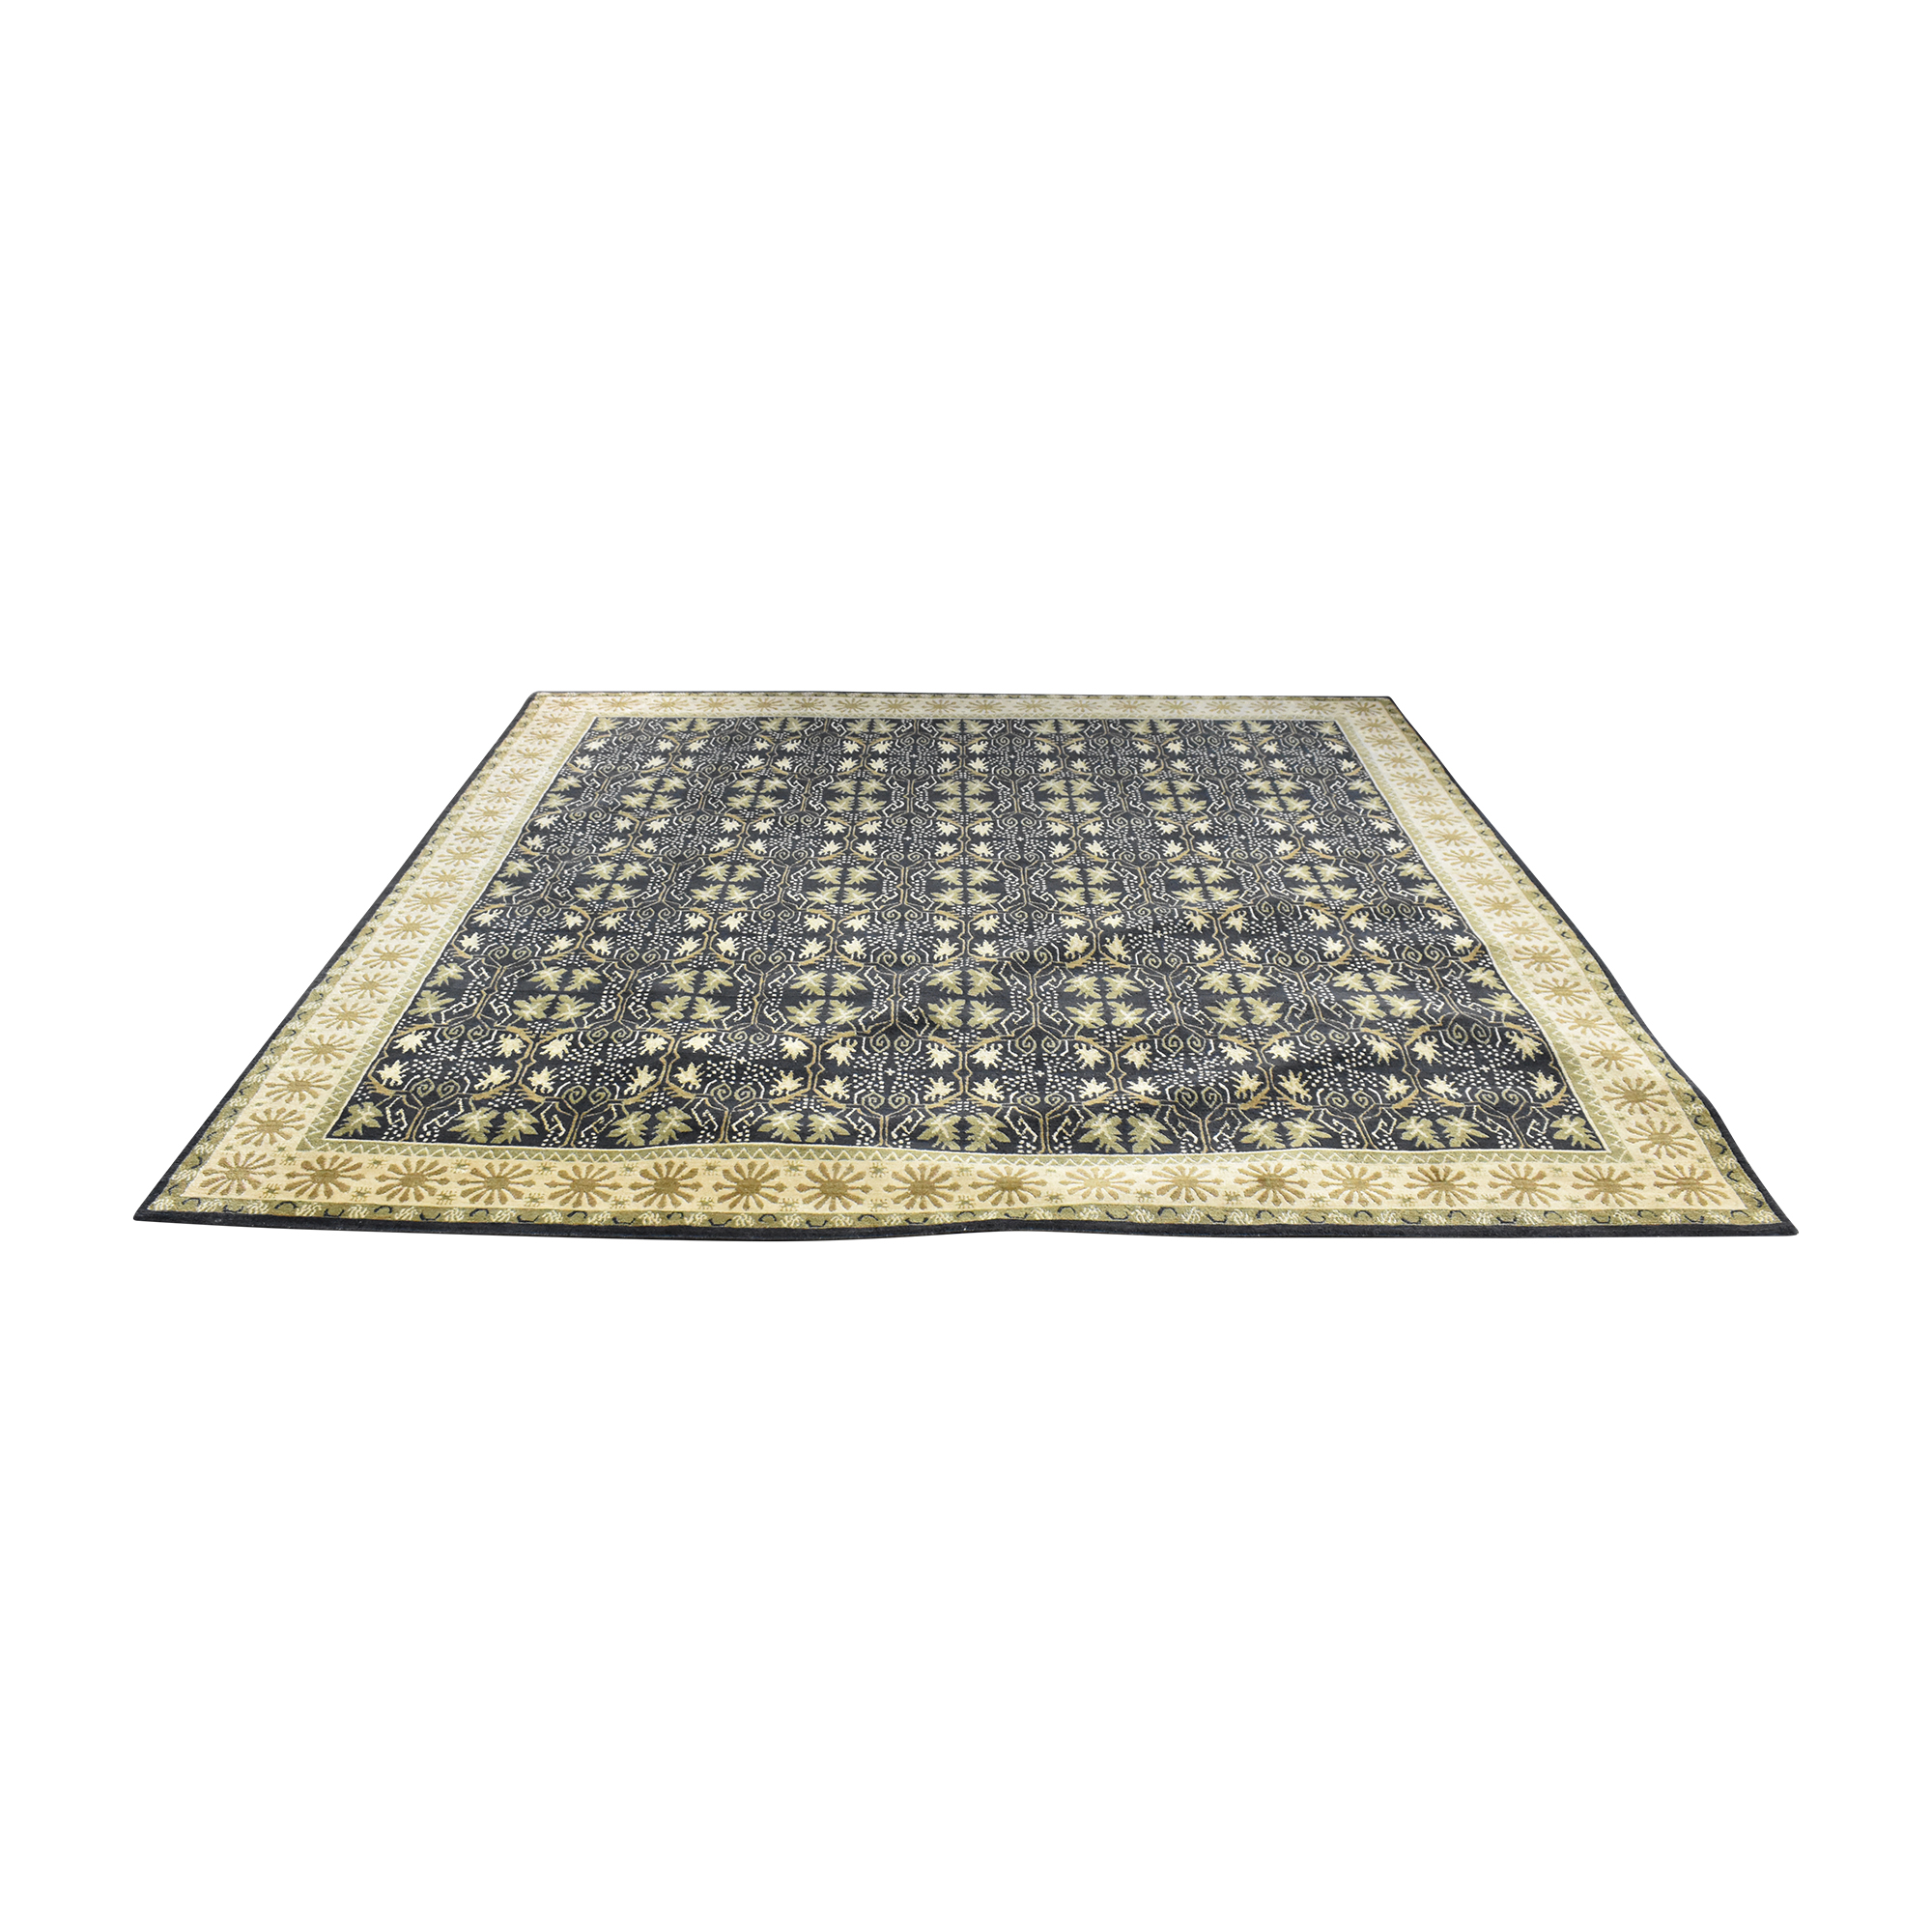 Herford Imports Herford Imports Handmade Tibetan Area Rug pa